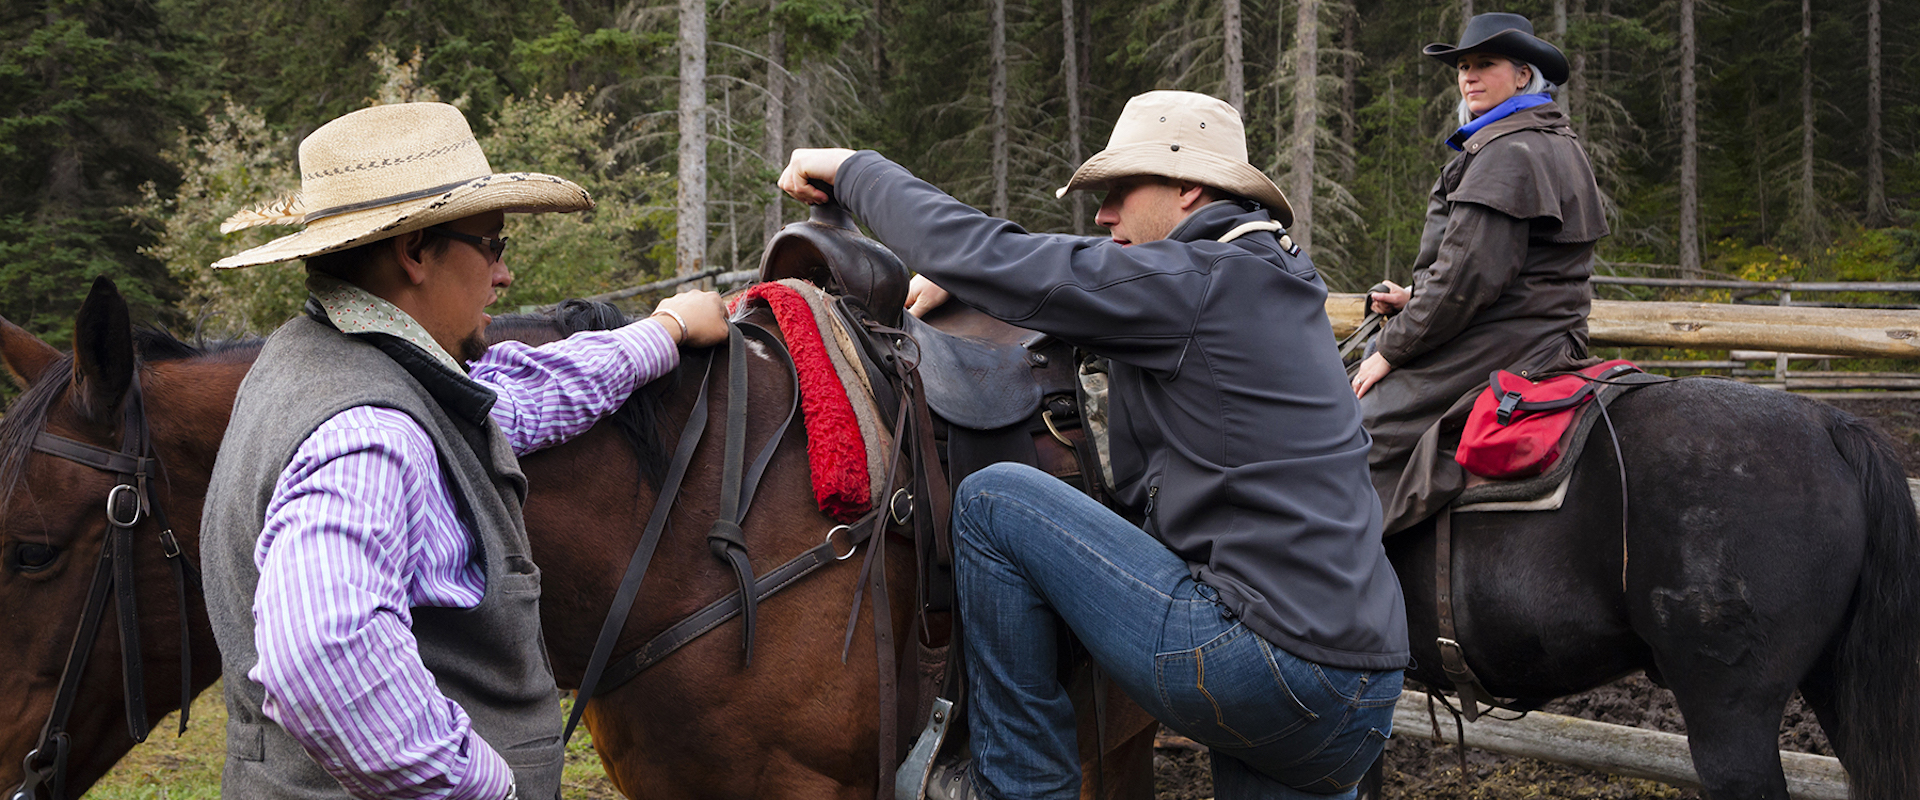 Horseback Backcountry Trip in Banff, Canadian Rockies with Banff Trail Riders